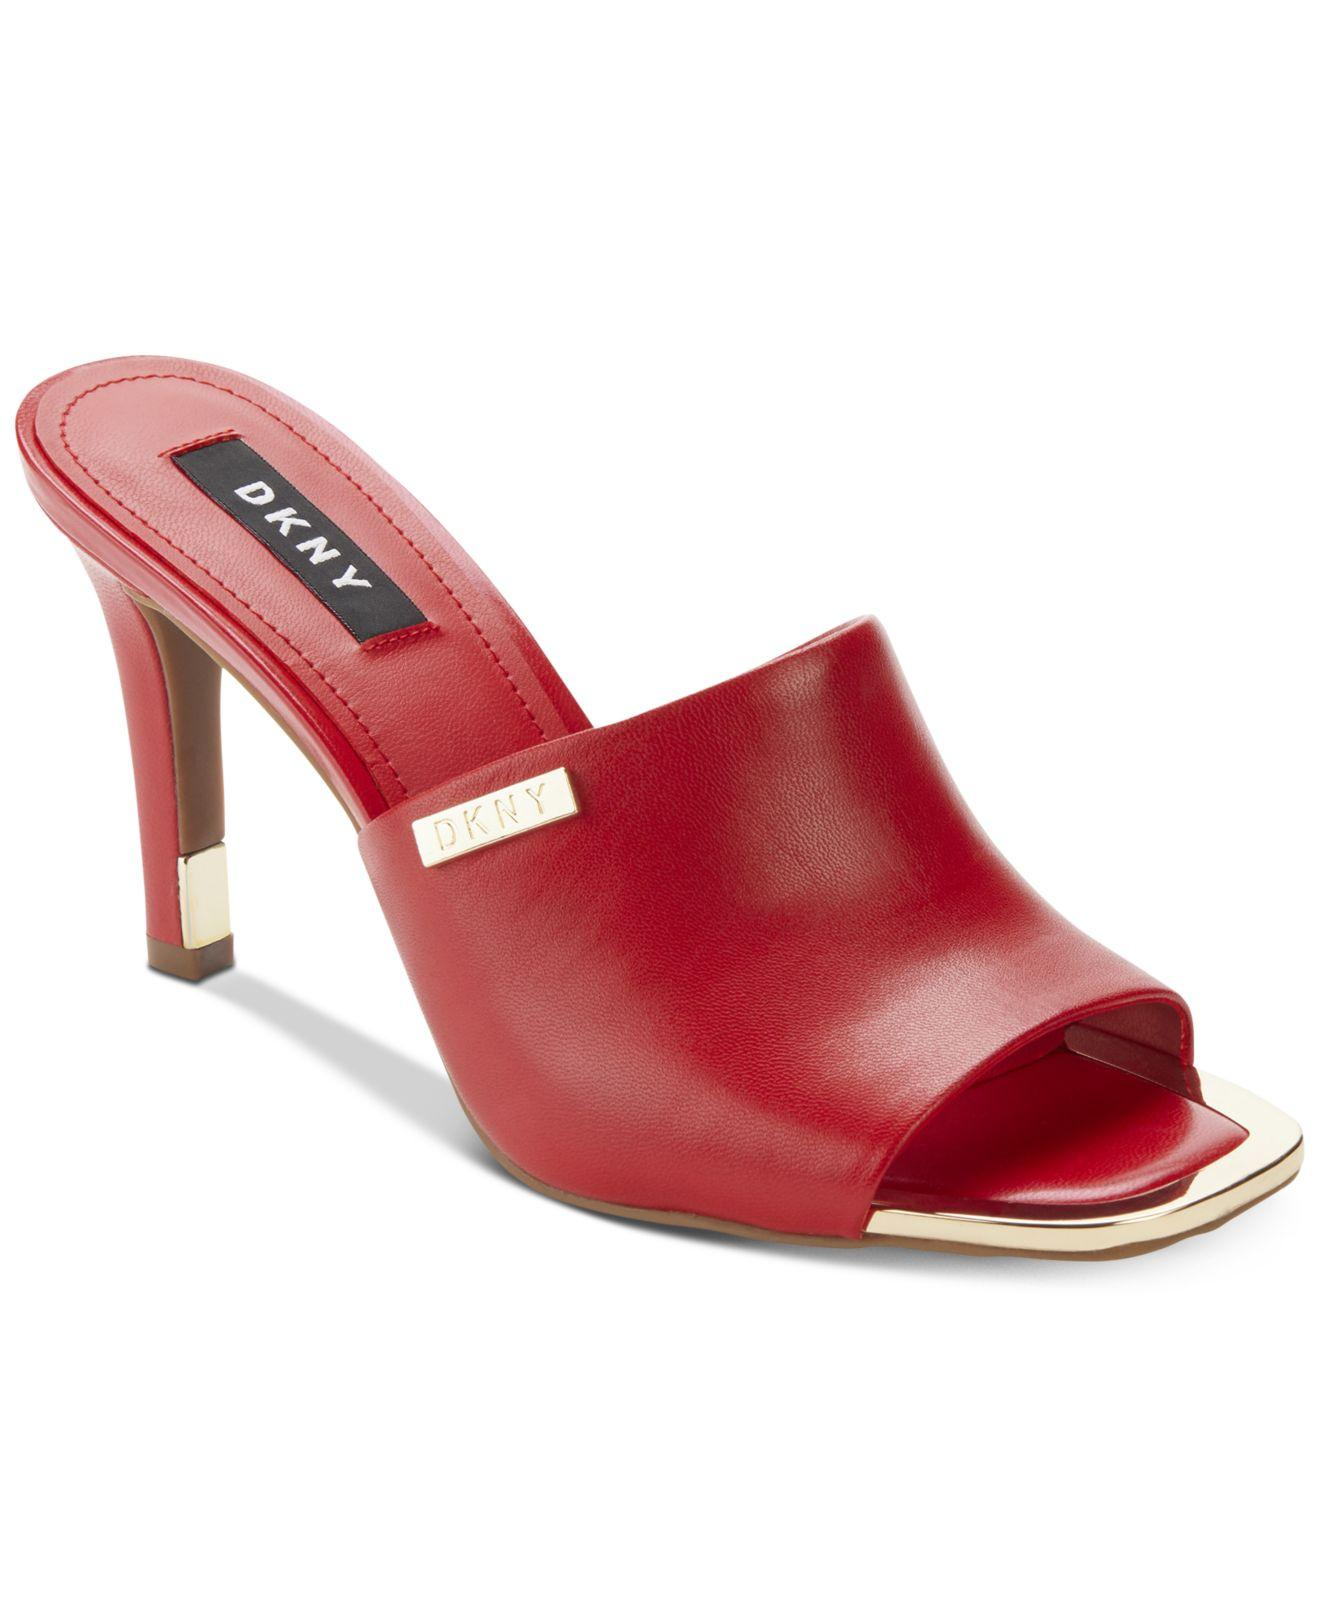 40b724e8c8 DKNY Bronx Dress Sandals, Created For Macy's in Red - Lyst